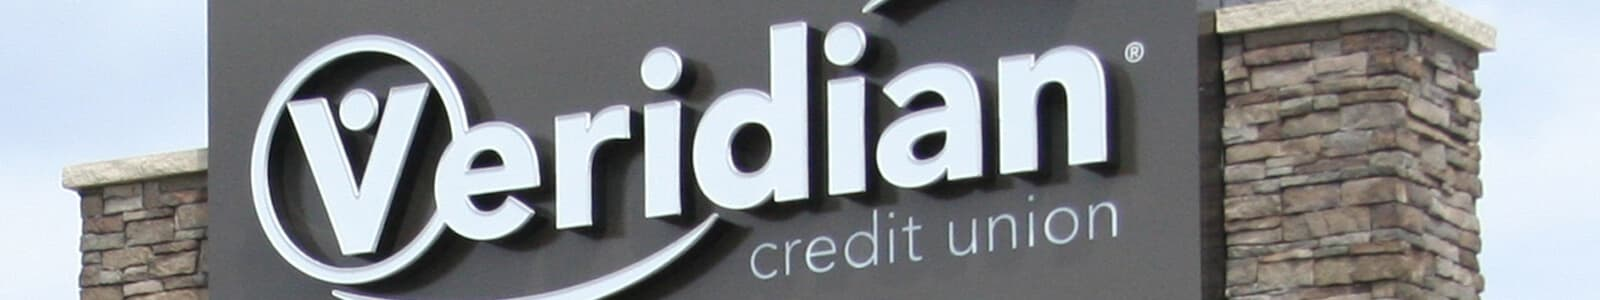 Banking/Financial Veridian Credit Union